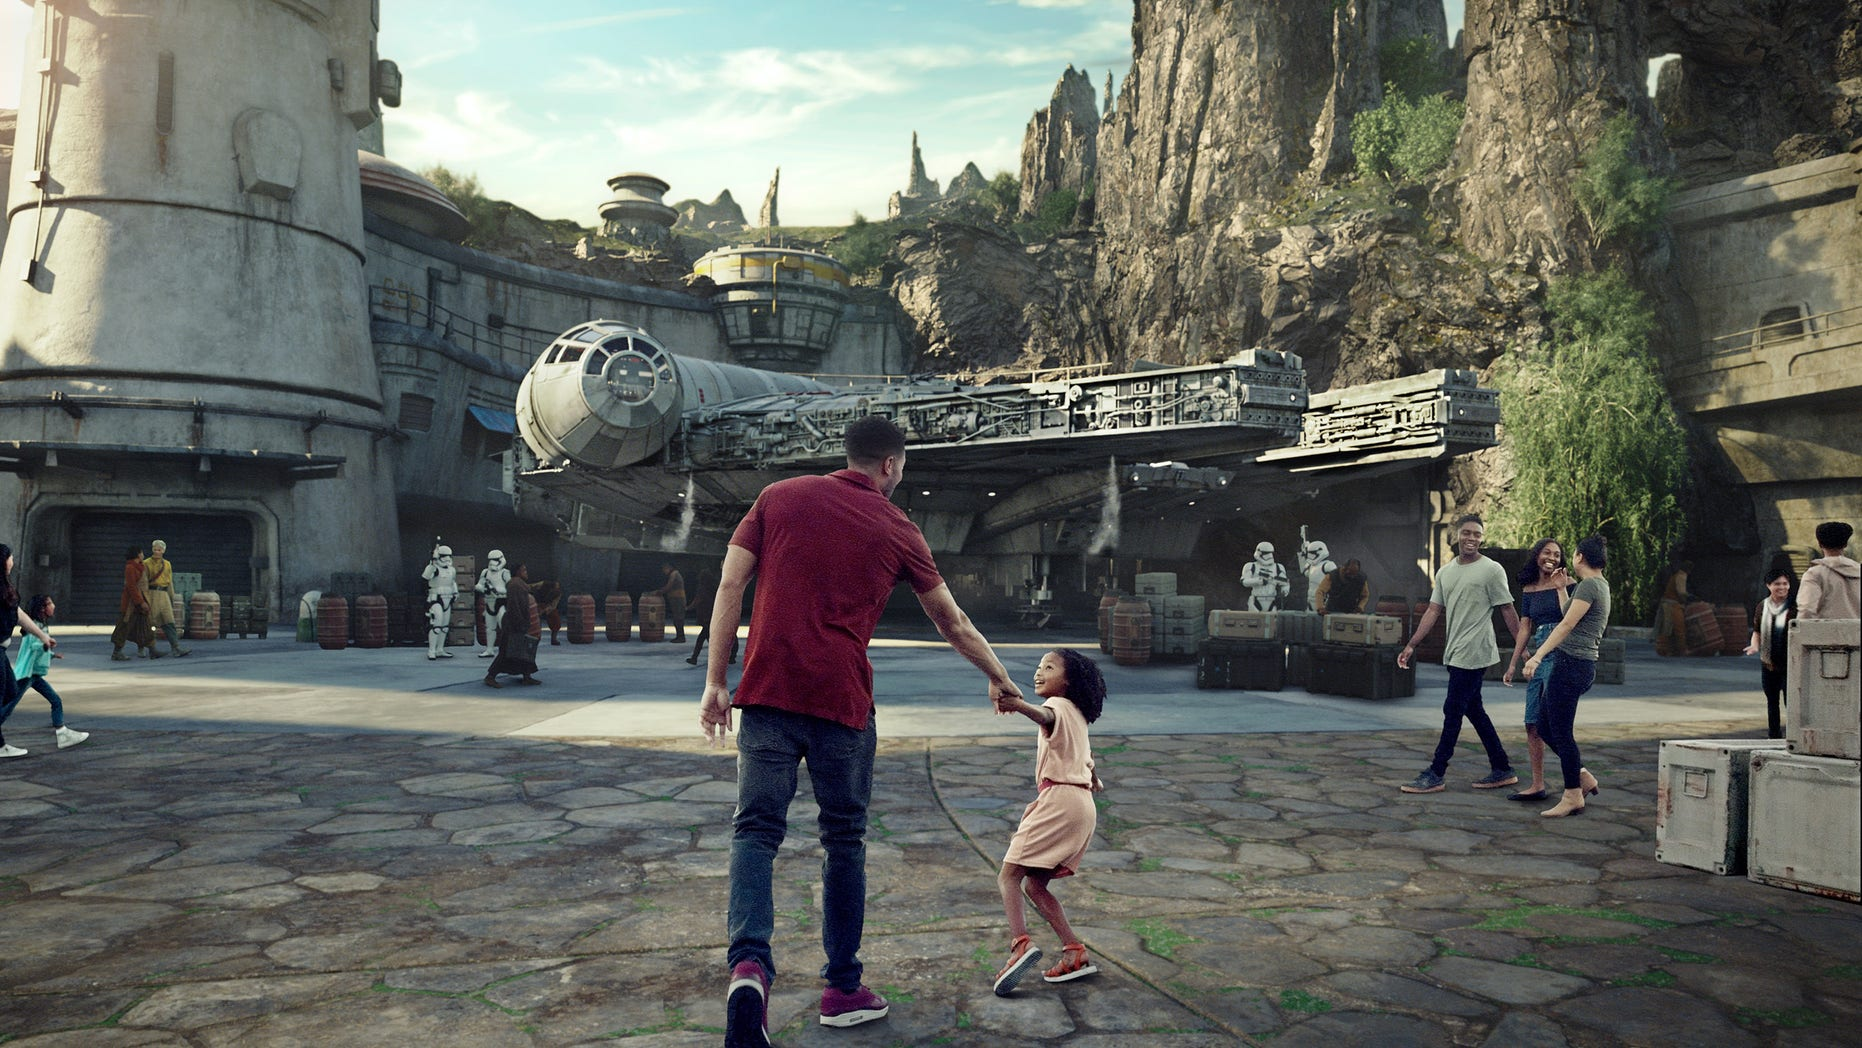 The massive 14-acre Star Wars section of the Disney's park will be the largest single-themed land expansion ever.